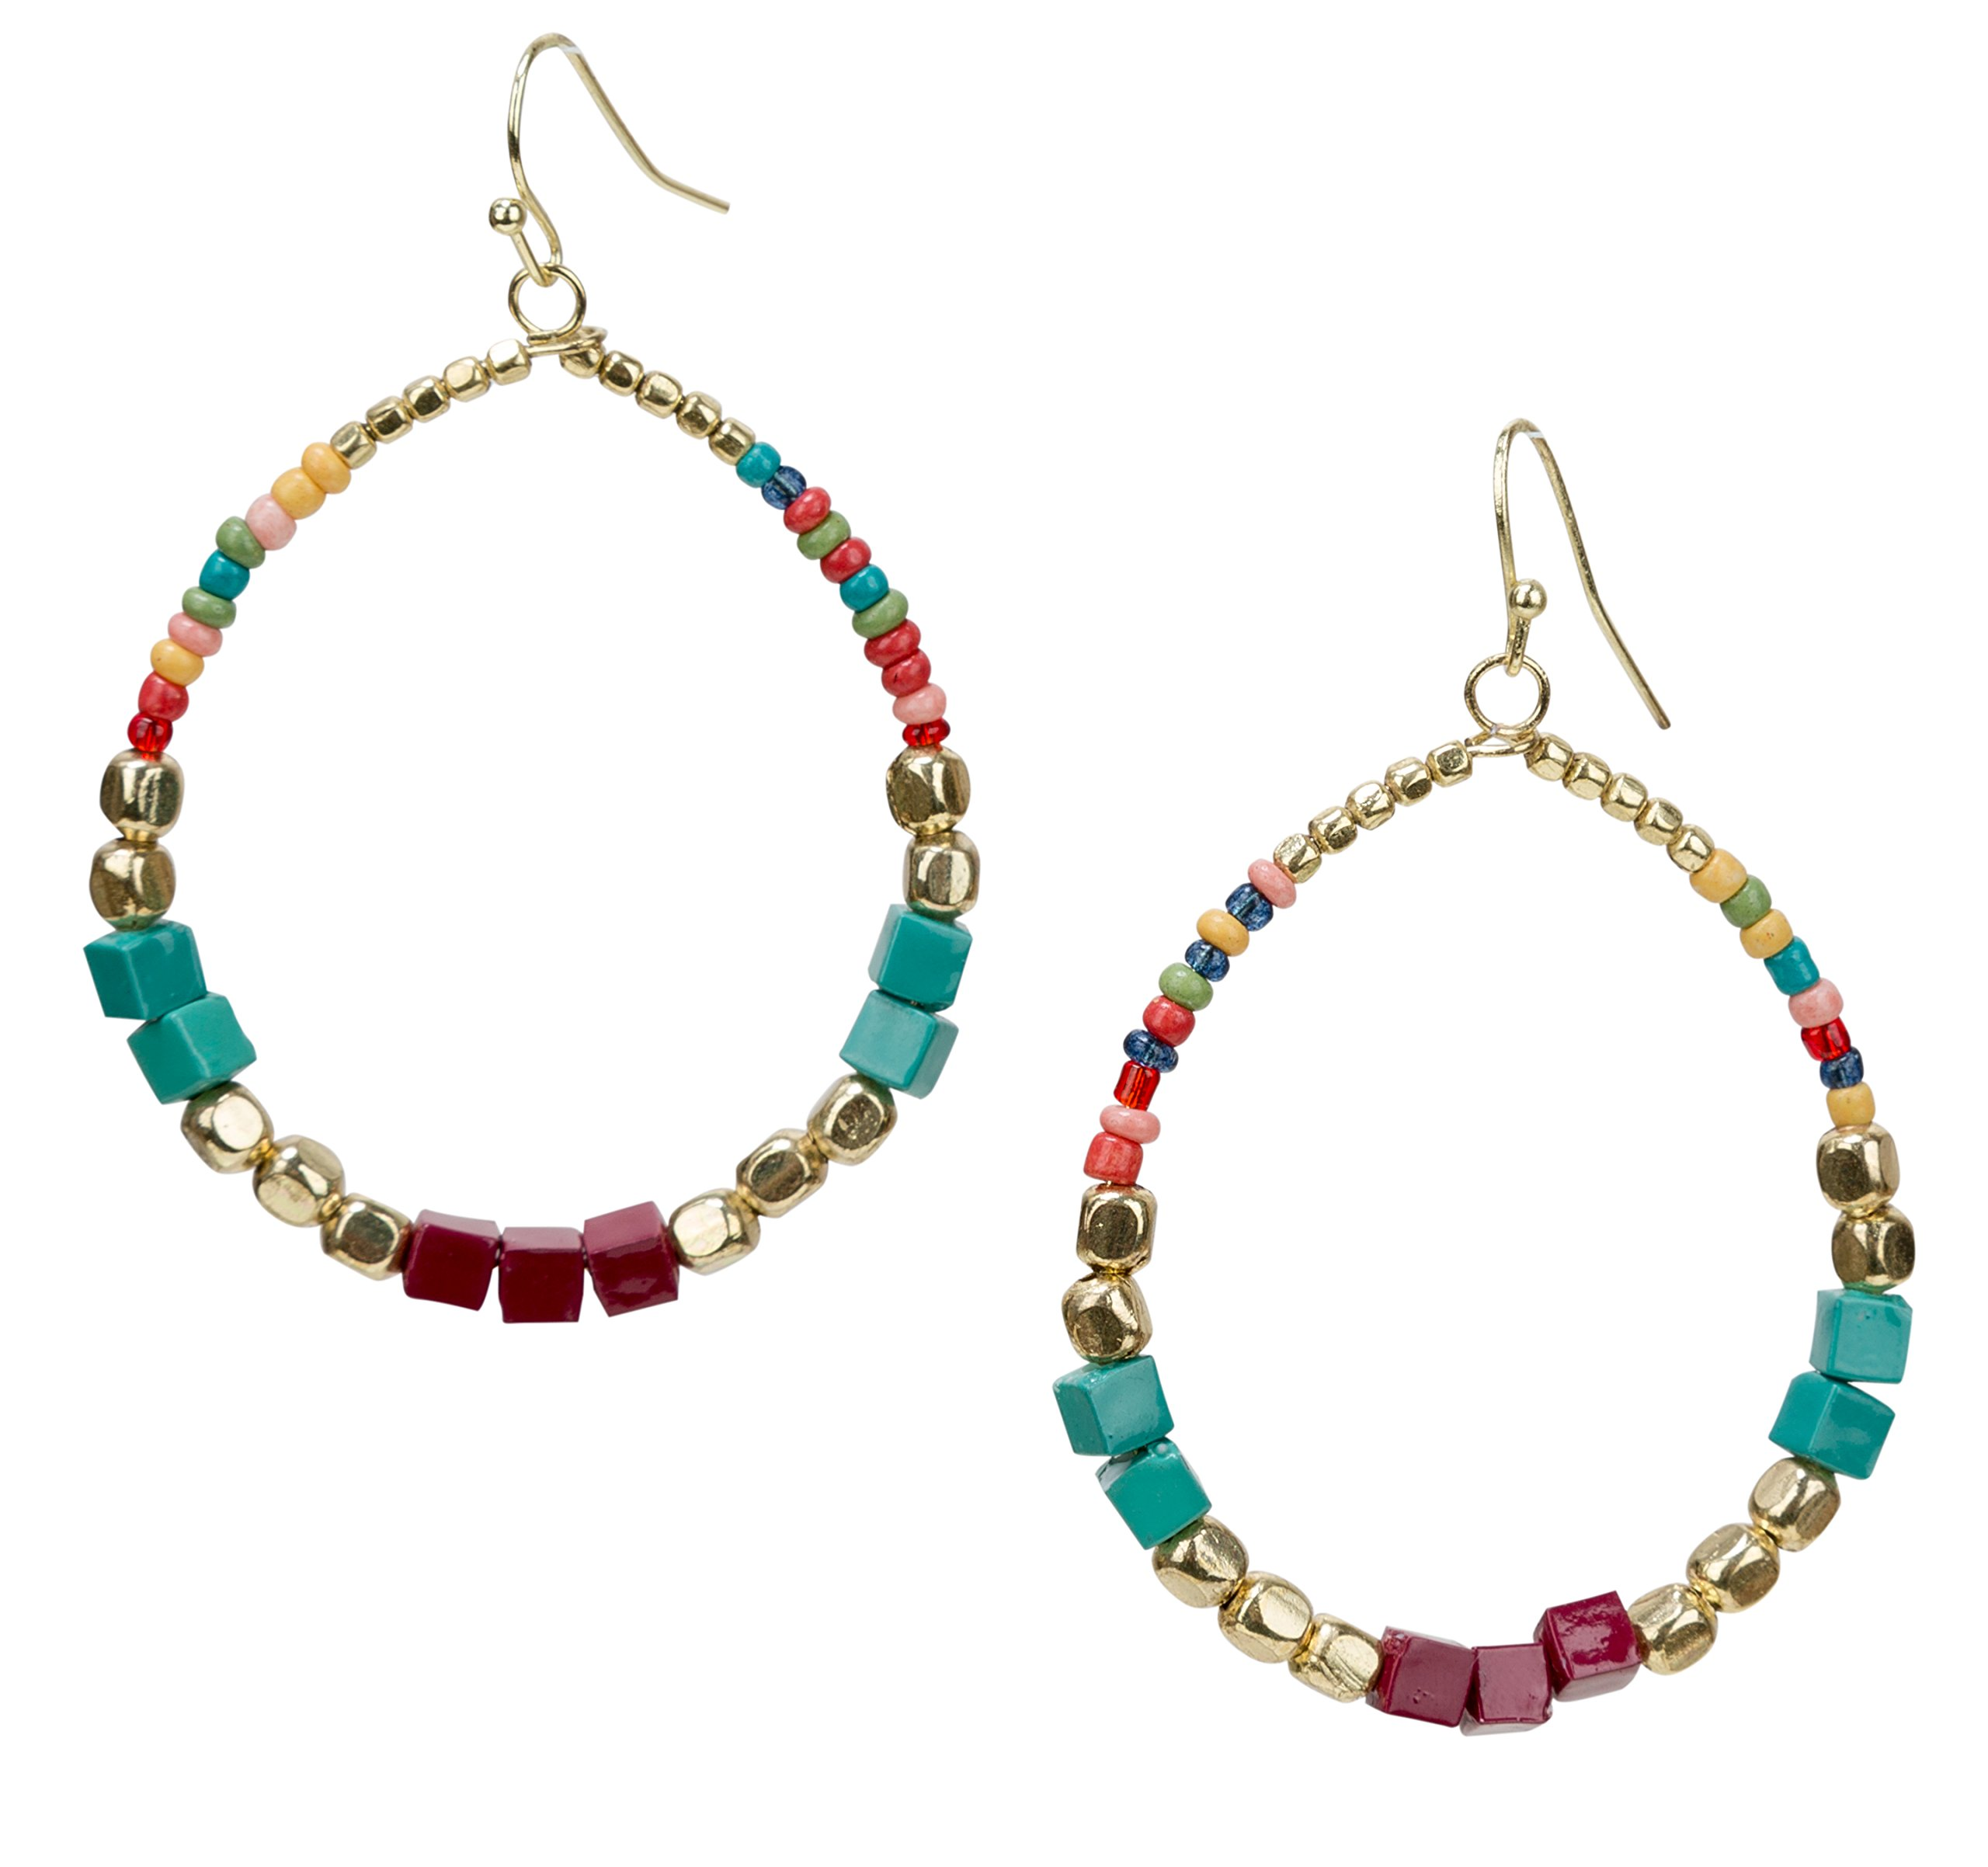 Bohemian Multi-Colored Cube Beaded Hoop Earrings for Women | SPUNKYsoul Collection (Teal/Red/Cube)